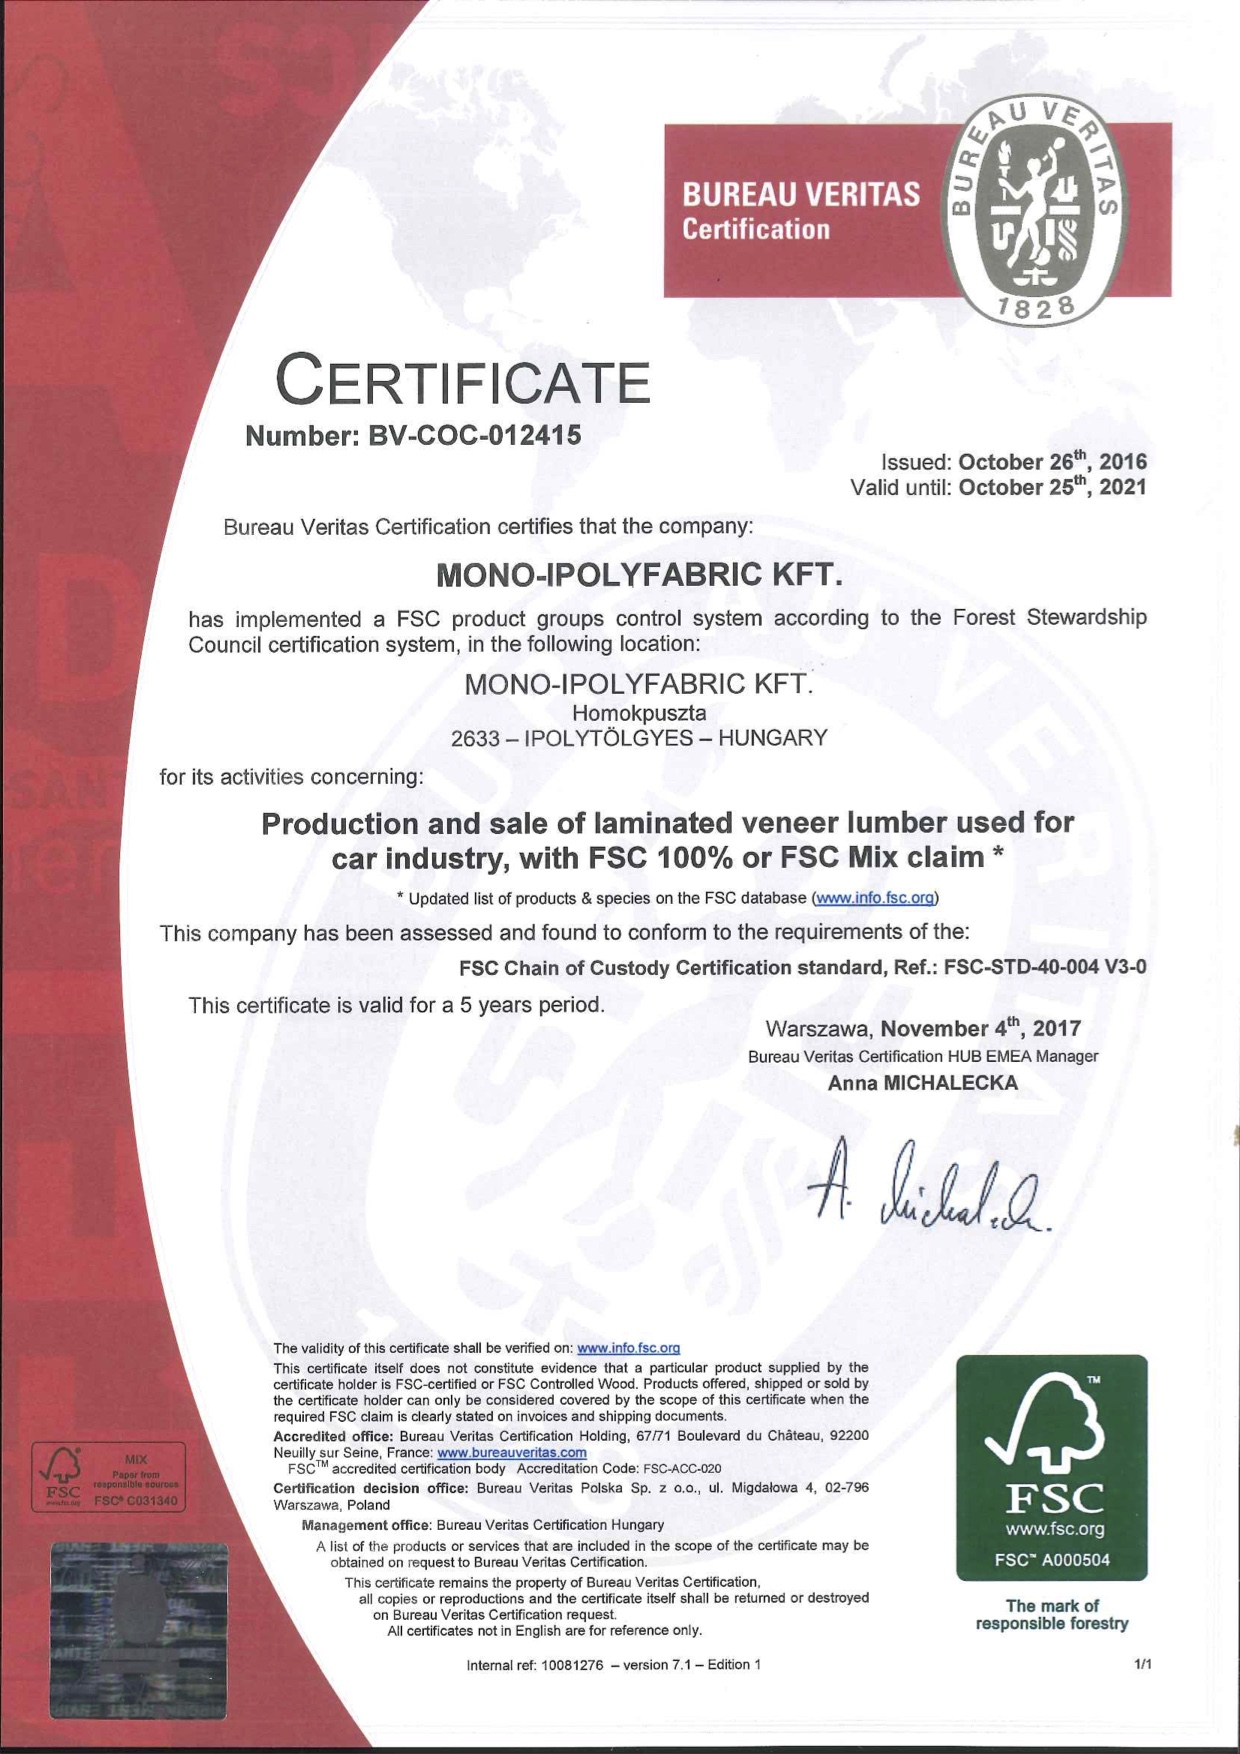 fsc certificate stewardship forest council check mono report certified